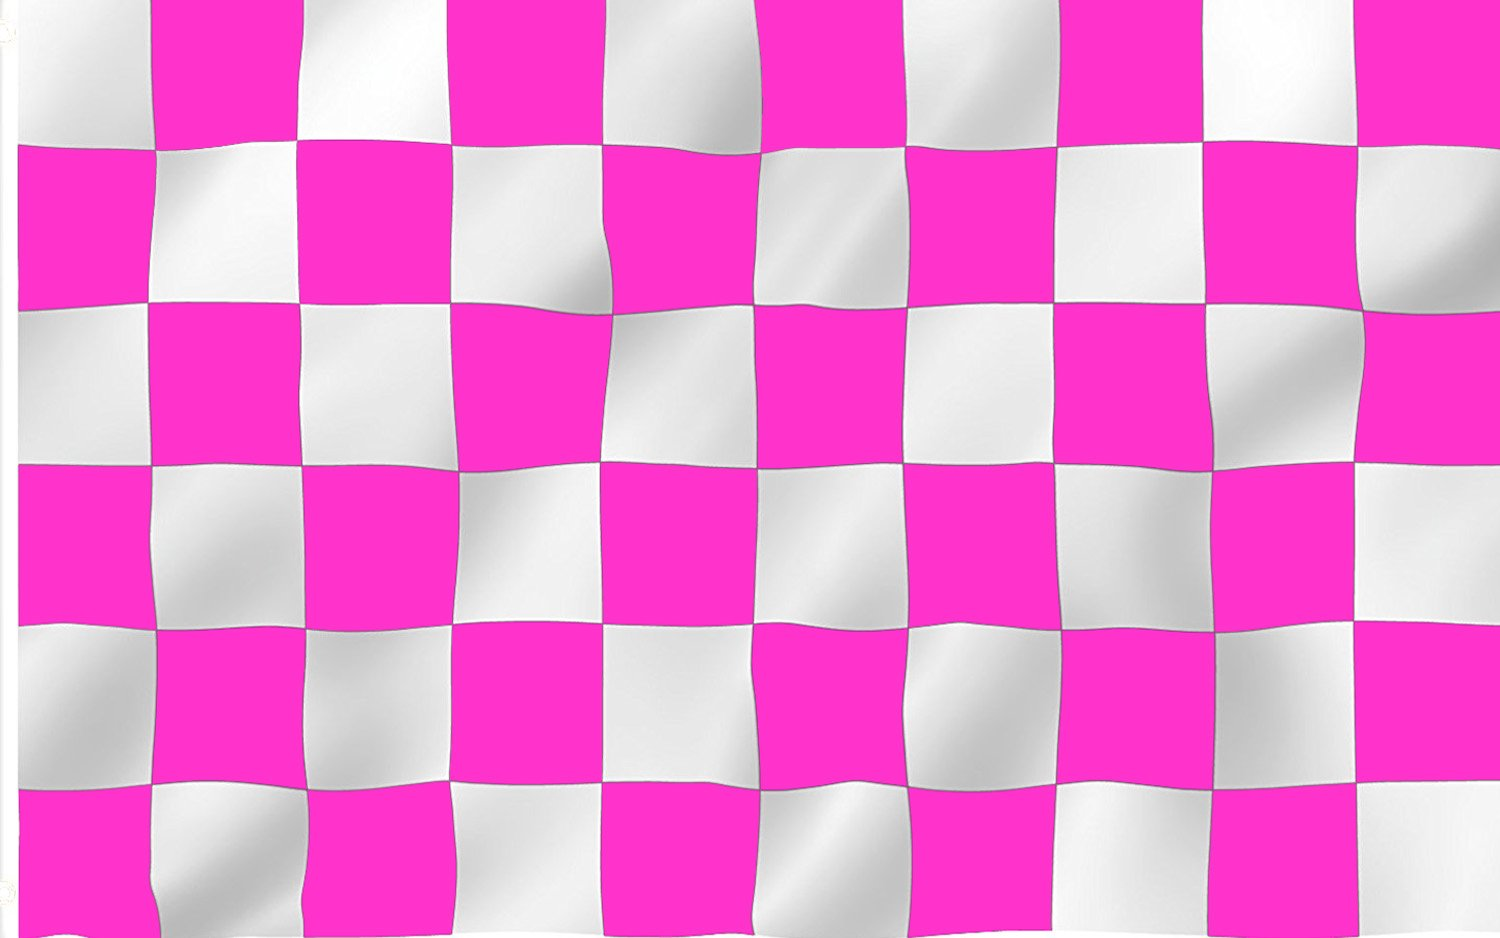 6 ft. Pink & White Checker Bicycle Safety Flag with Rear Axle Mounting Bracket